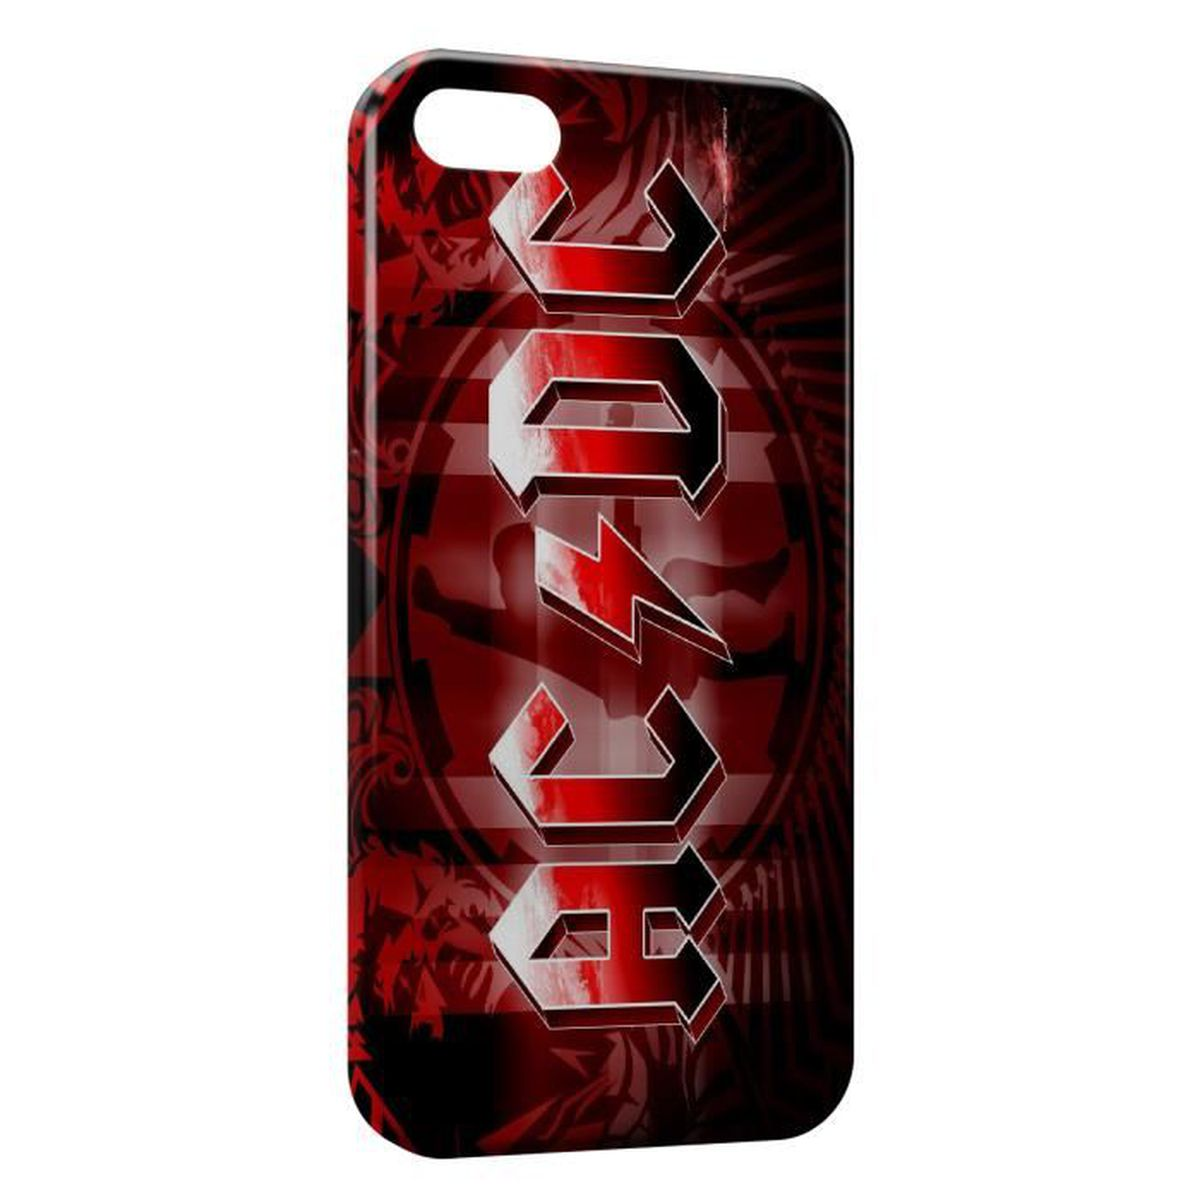 coque iphone 6s plus acdc red style rock